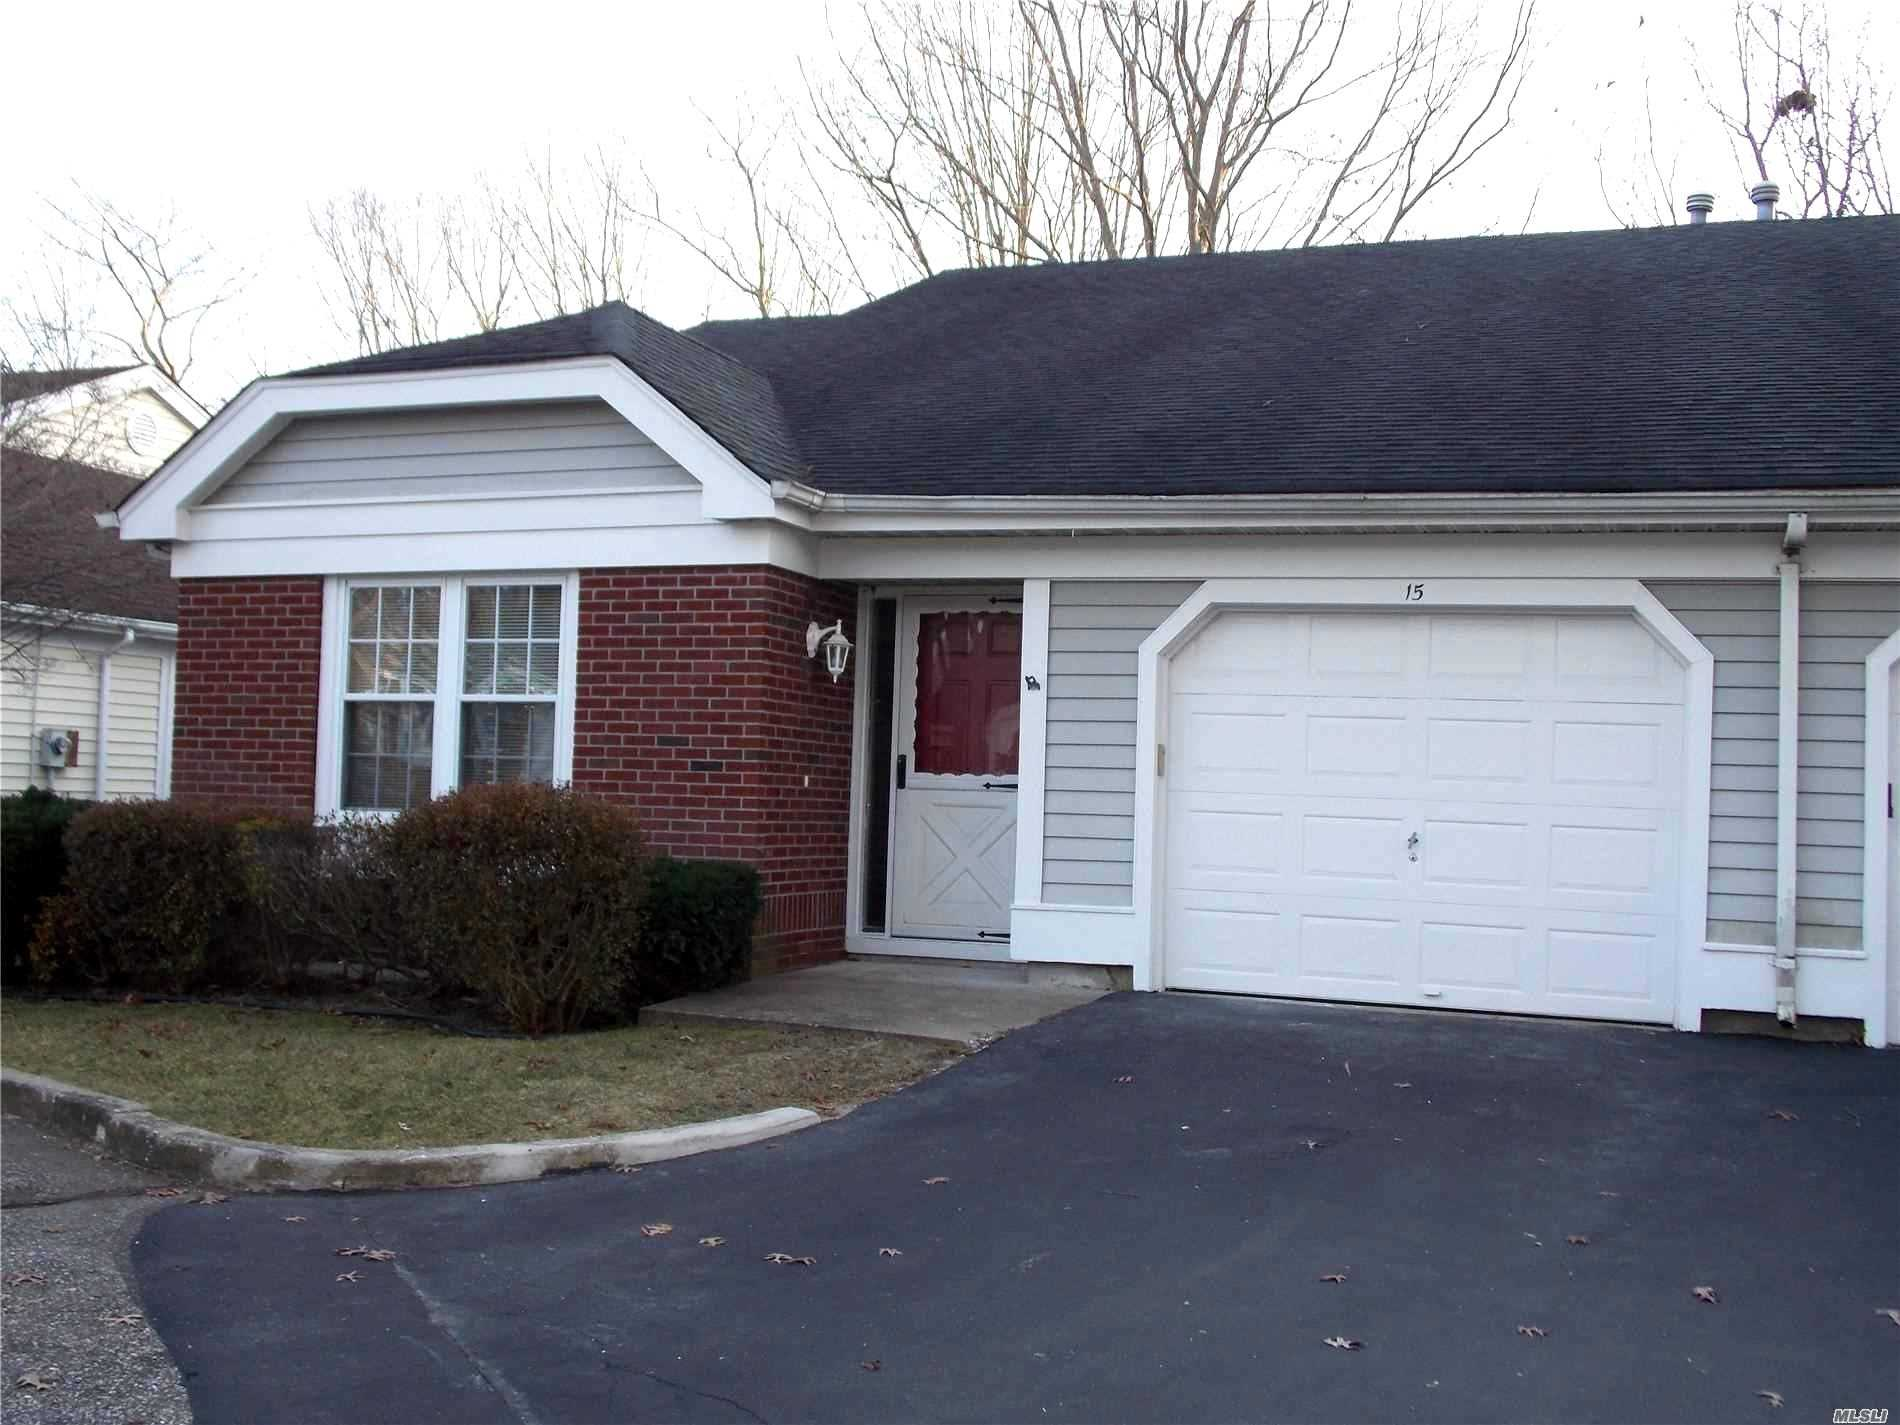 Updated Warwick Model In A 55 Plus Gated Community. Sunny & Bright With A Cul-De-Sac Location. Volume Ceilings, Updated Windows, New Bathrooms, Remote Lighted Ceiling Fans, Carpeting , Kitchen Flooring & Counter Tops. Large Kitchen With Lots Of Cabinetry, Spacious Master Suite With Walk-In Closet And Additional Double Door Closet. Concrete Patio Off Kitchen & Private Yard. Well Maintained Active Community With Lots Of Activities. Community Location Is Convenient To Major Roadways, Shopping Etc